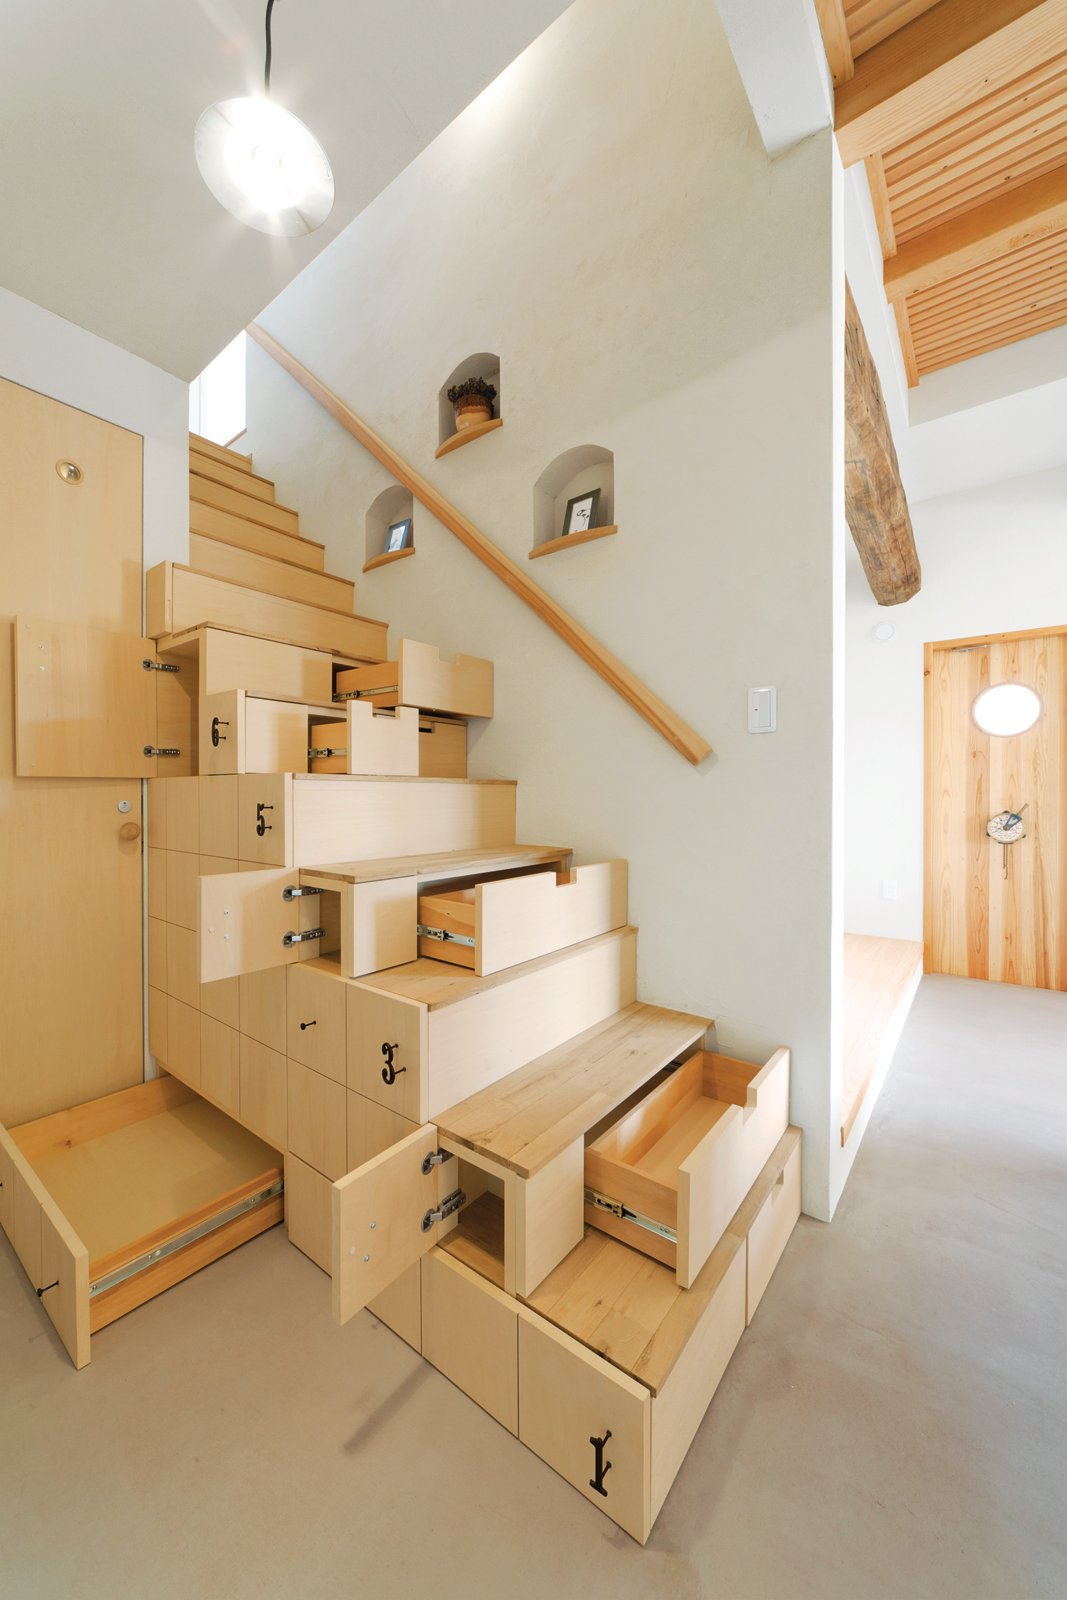 Wood Tread, Wood Railing, Under Stairs Storage Type, and Staircase Photo by Osamu Abe  Photo 7 of 10 in Wood Guide Part II: How to Recognize 5 (More) Common Wood Species from Top Drawer